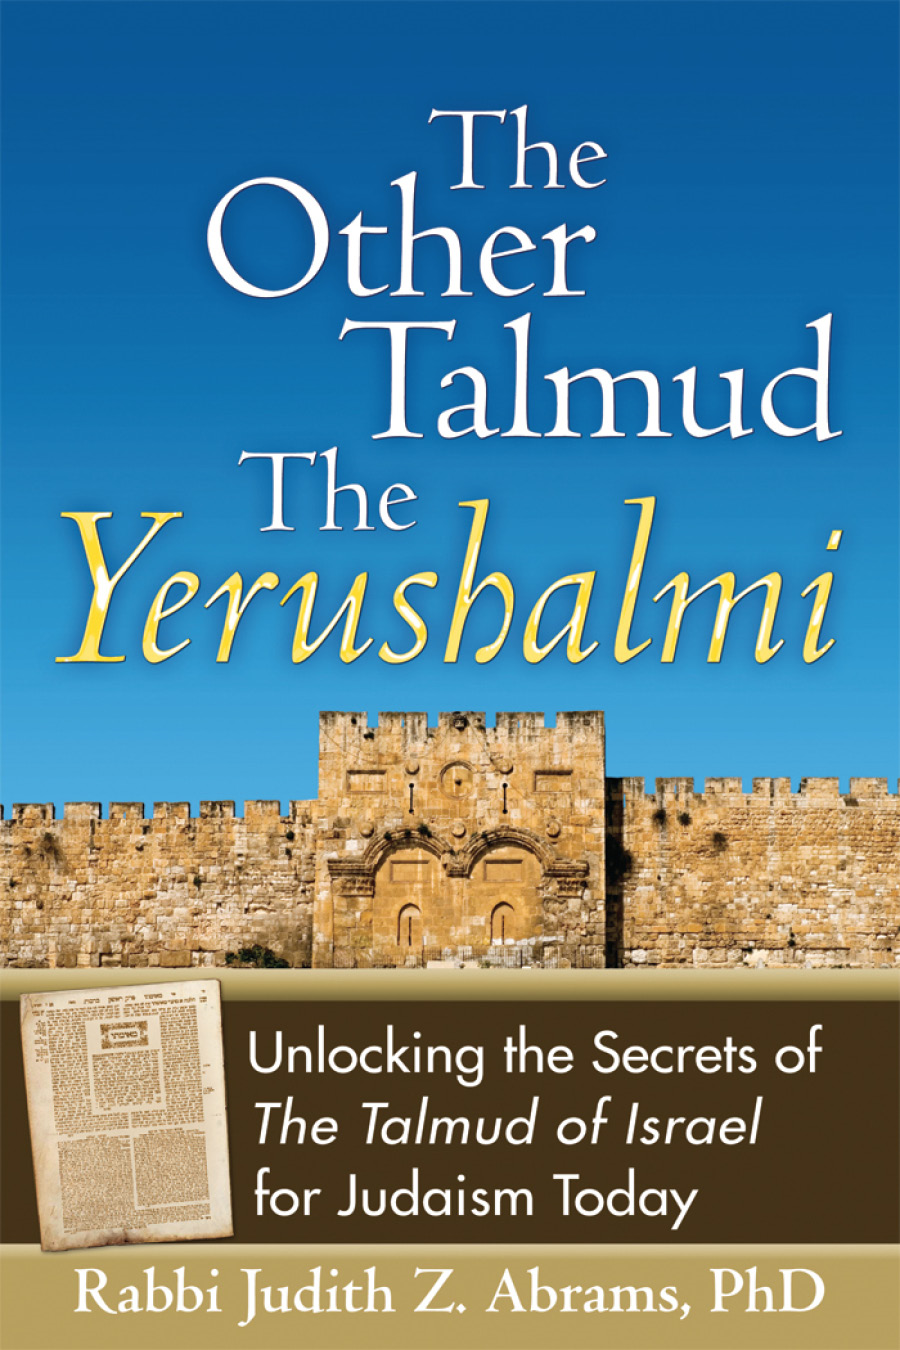 The Other TalmudThe Yerushalmi: Unlocking the Secrets of The Talmud of Israel for Judaism Today